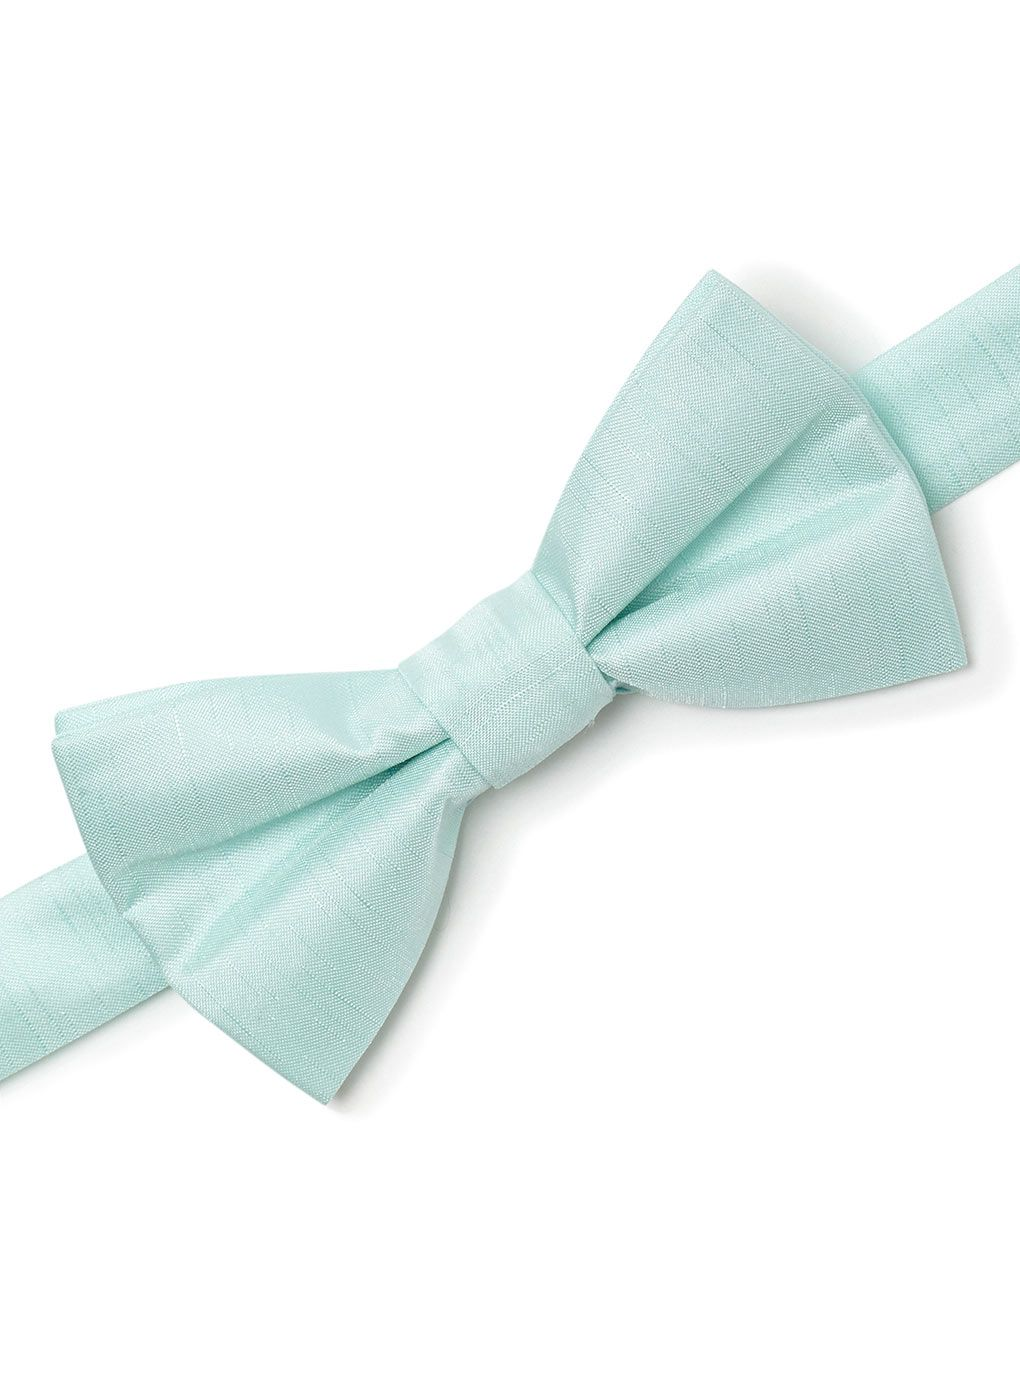 Baby Bow Tie http://www.weddingheart.co.uk/bhs--page-boys.html ...